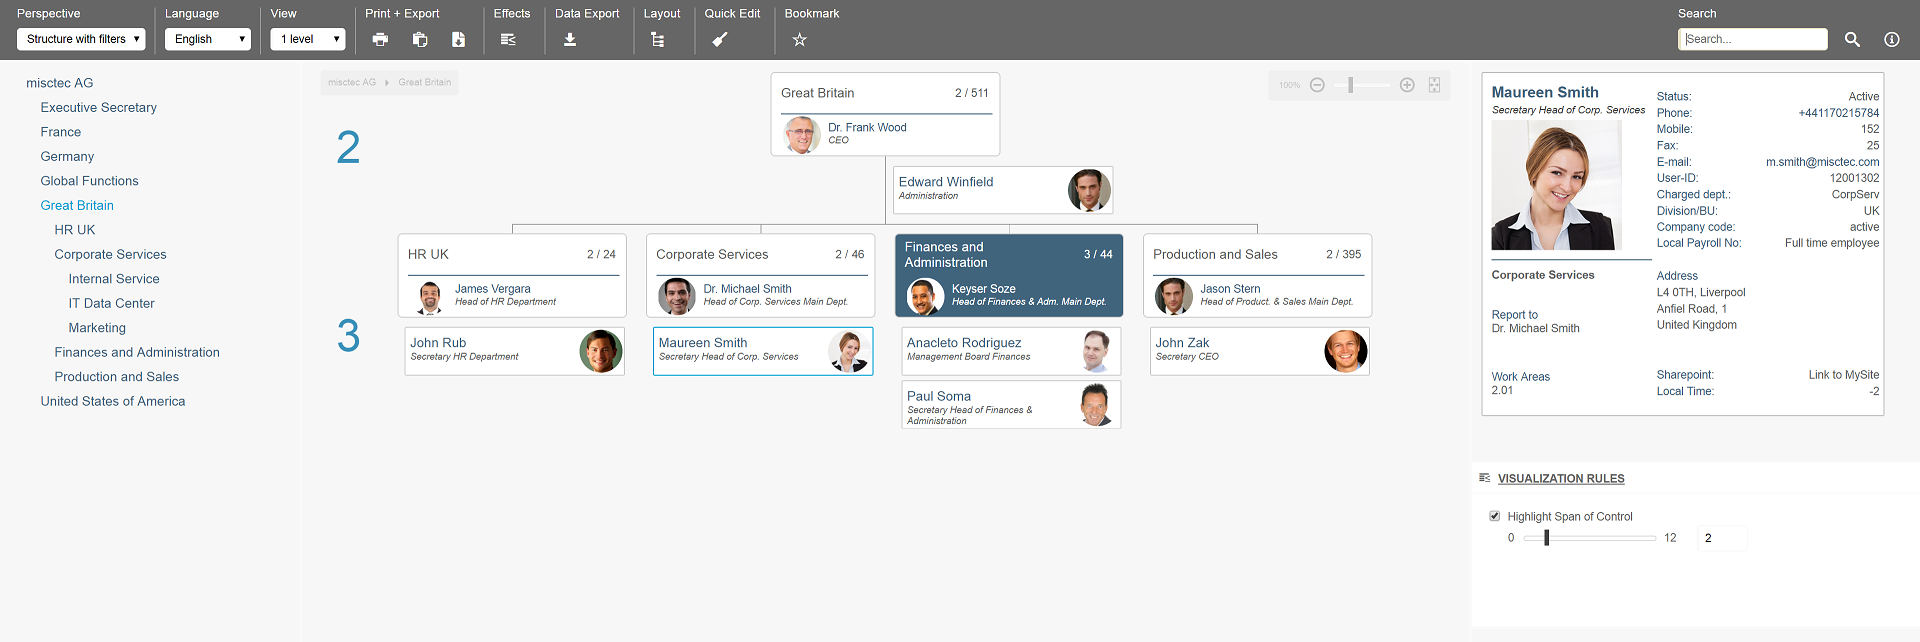 Ingentis org.manager on-premises org chart